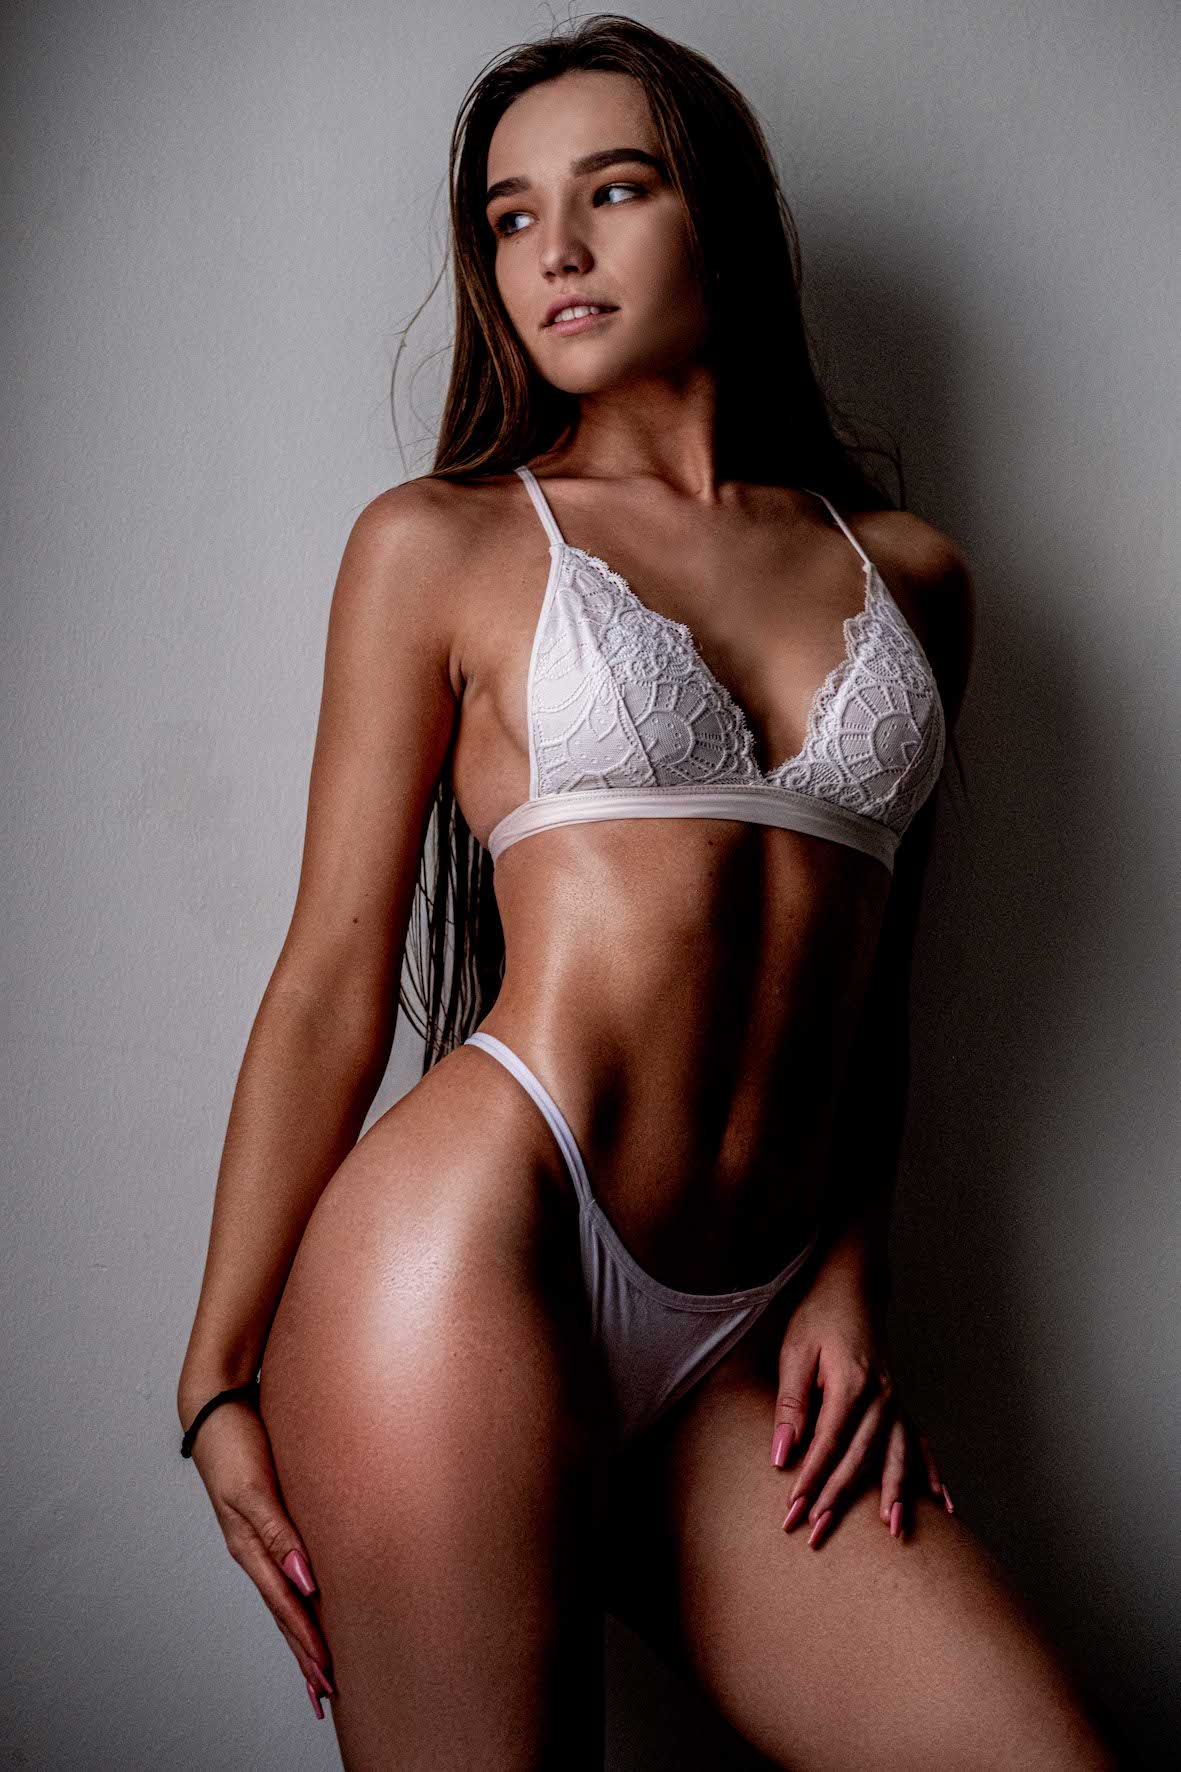 Meet Belle Westley in our SA Girls feature